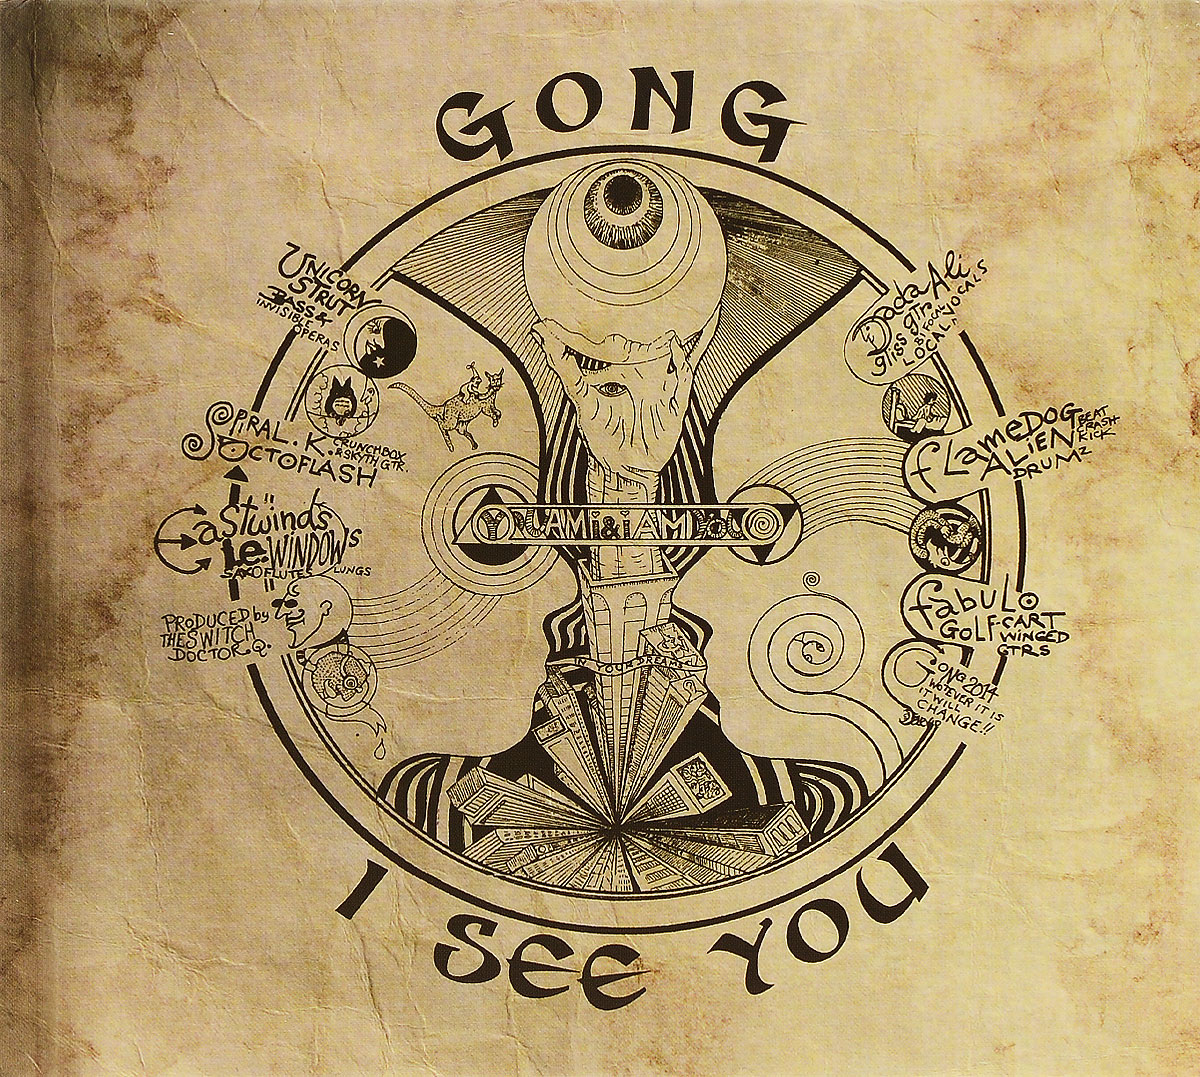 Gong Gong. I See You chi gong